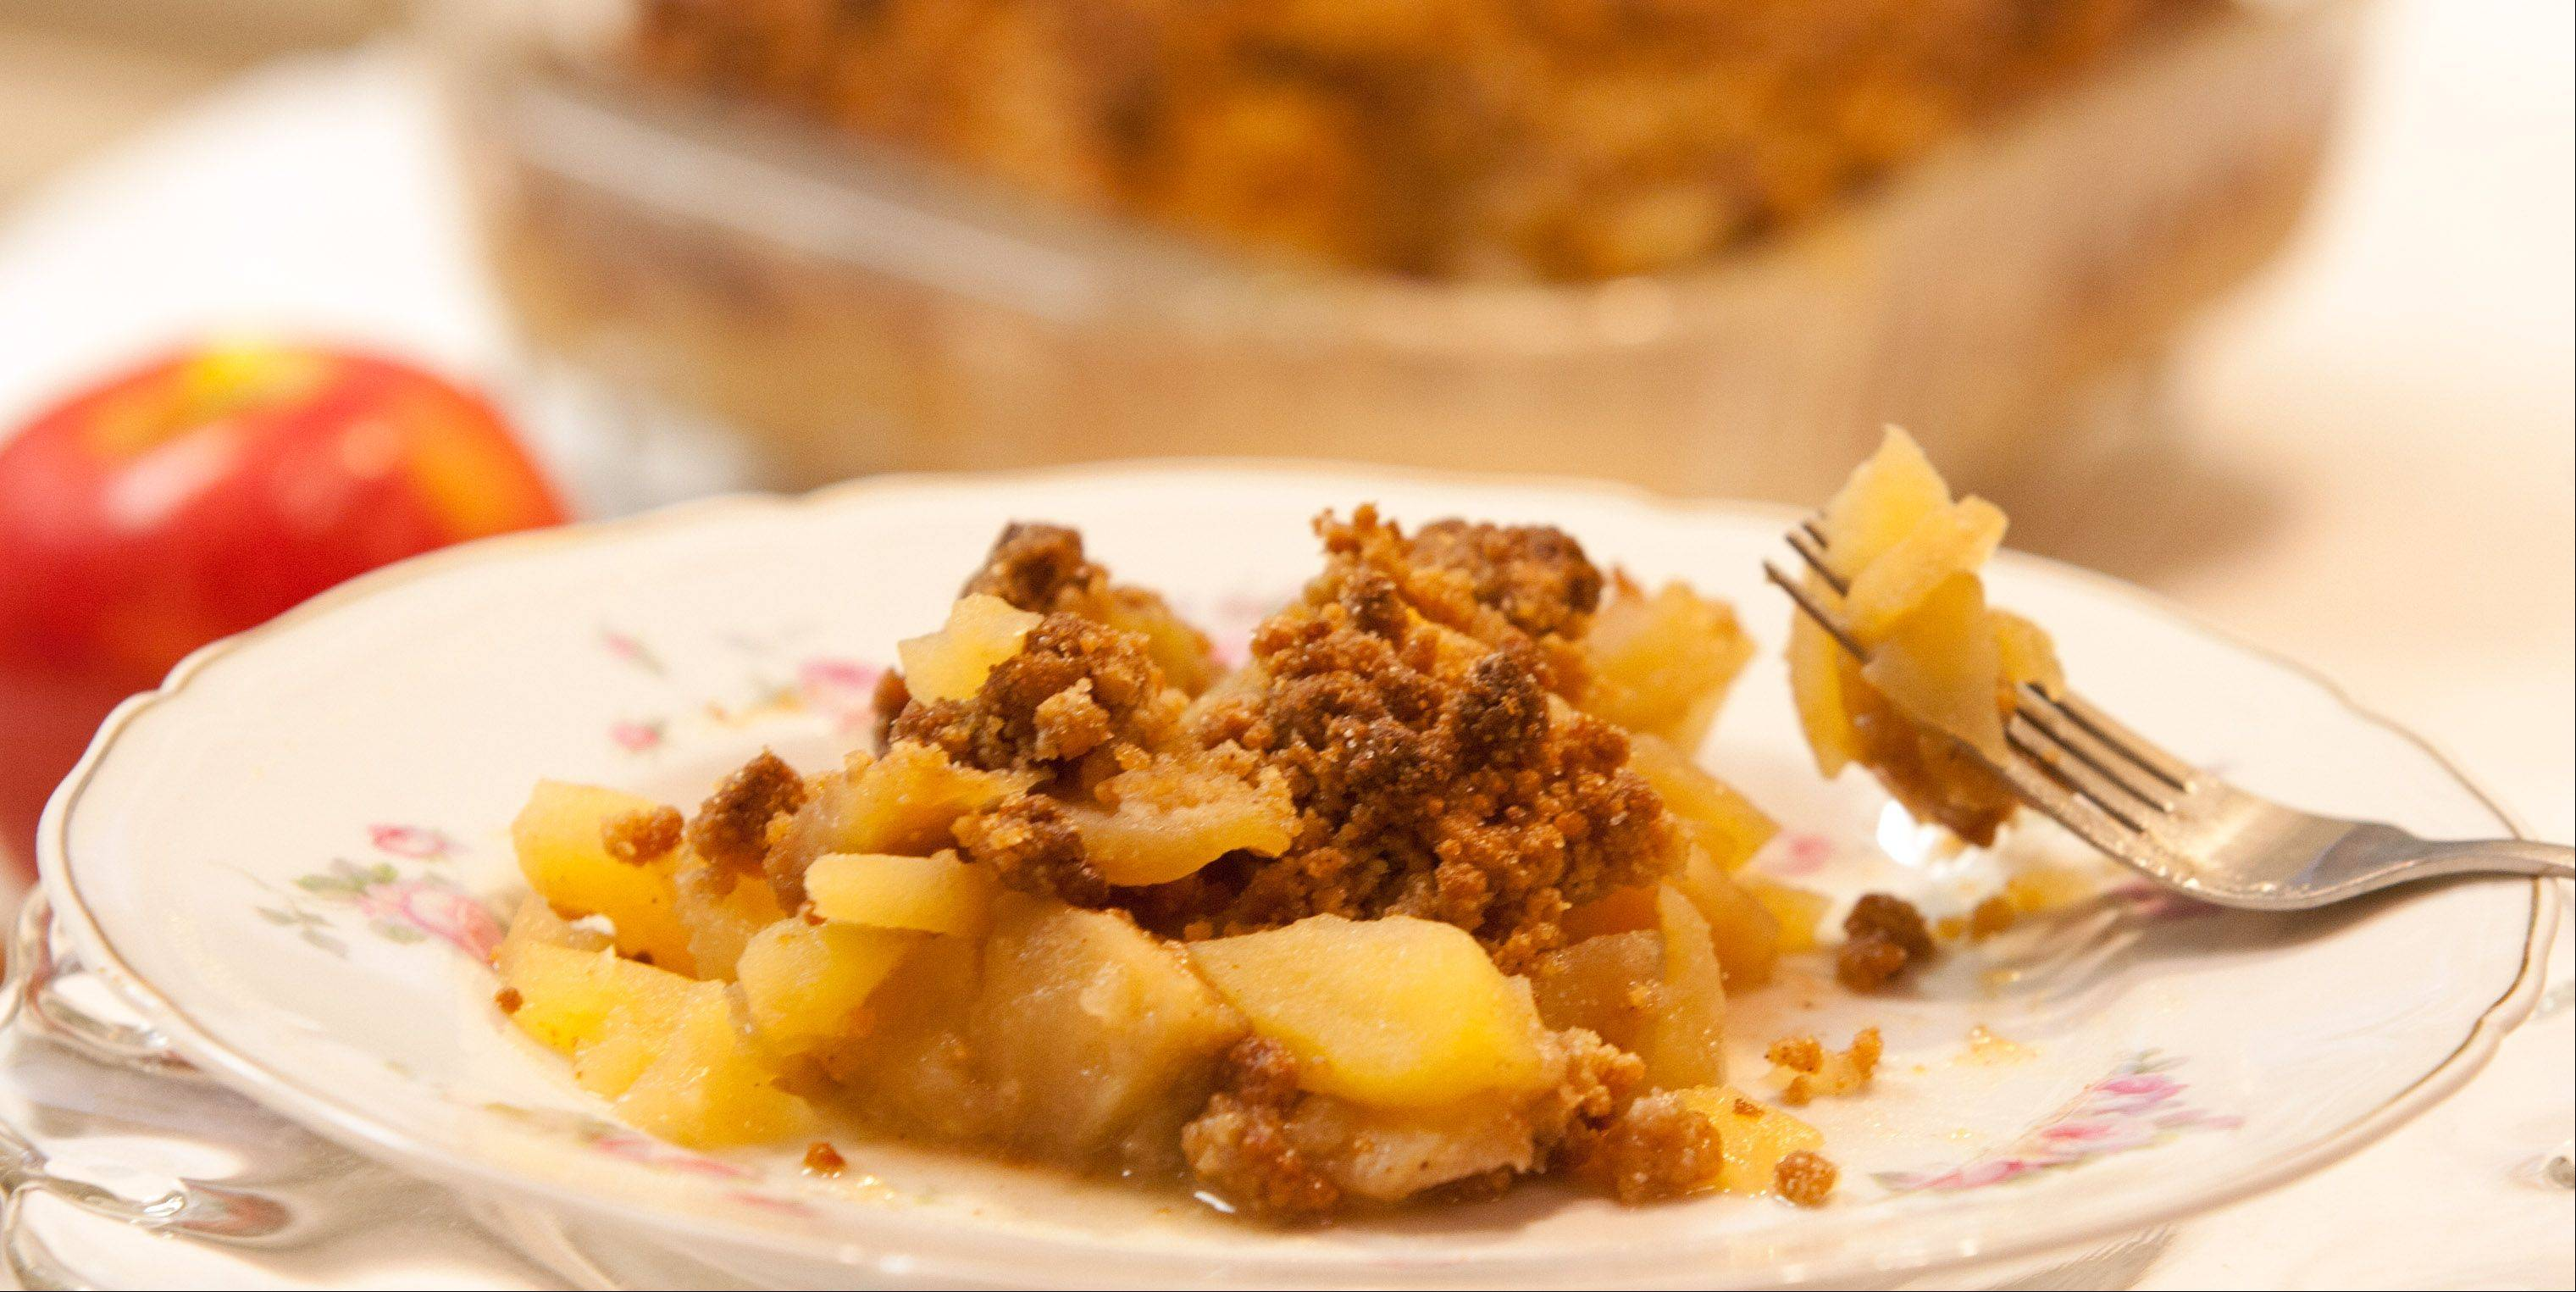 Nut flour and coconut flour combine with butter, spices and sugar to make a gluten-free topping for autumn apple crisp.